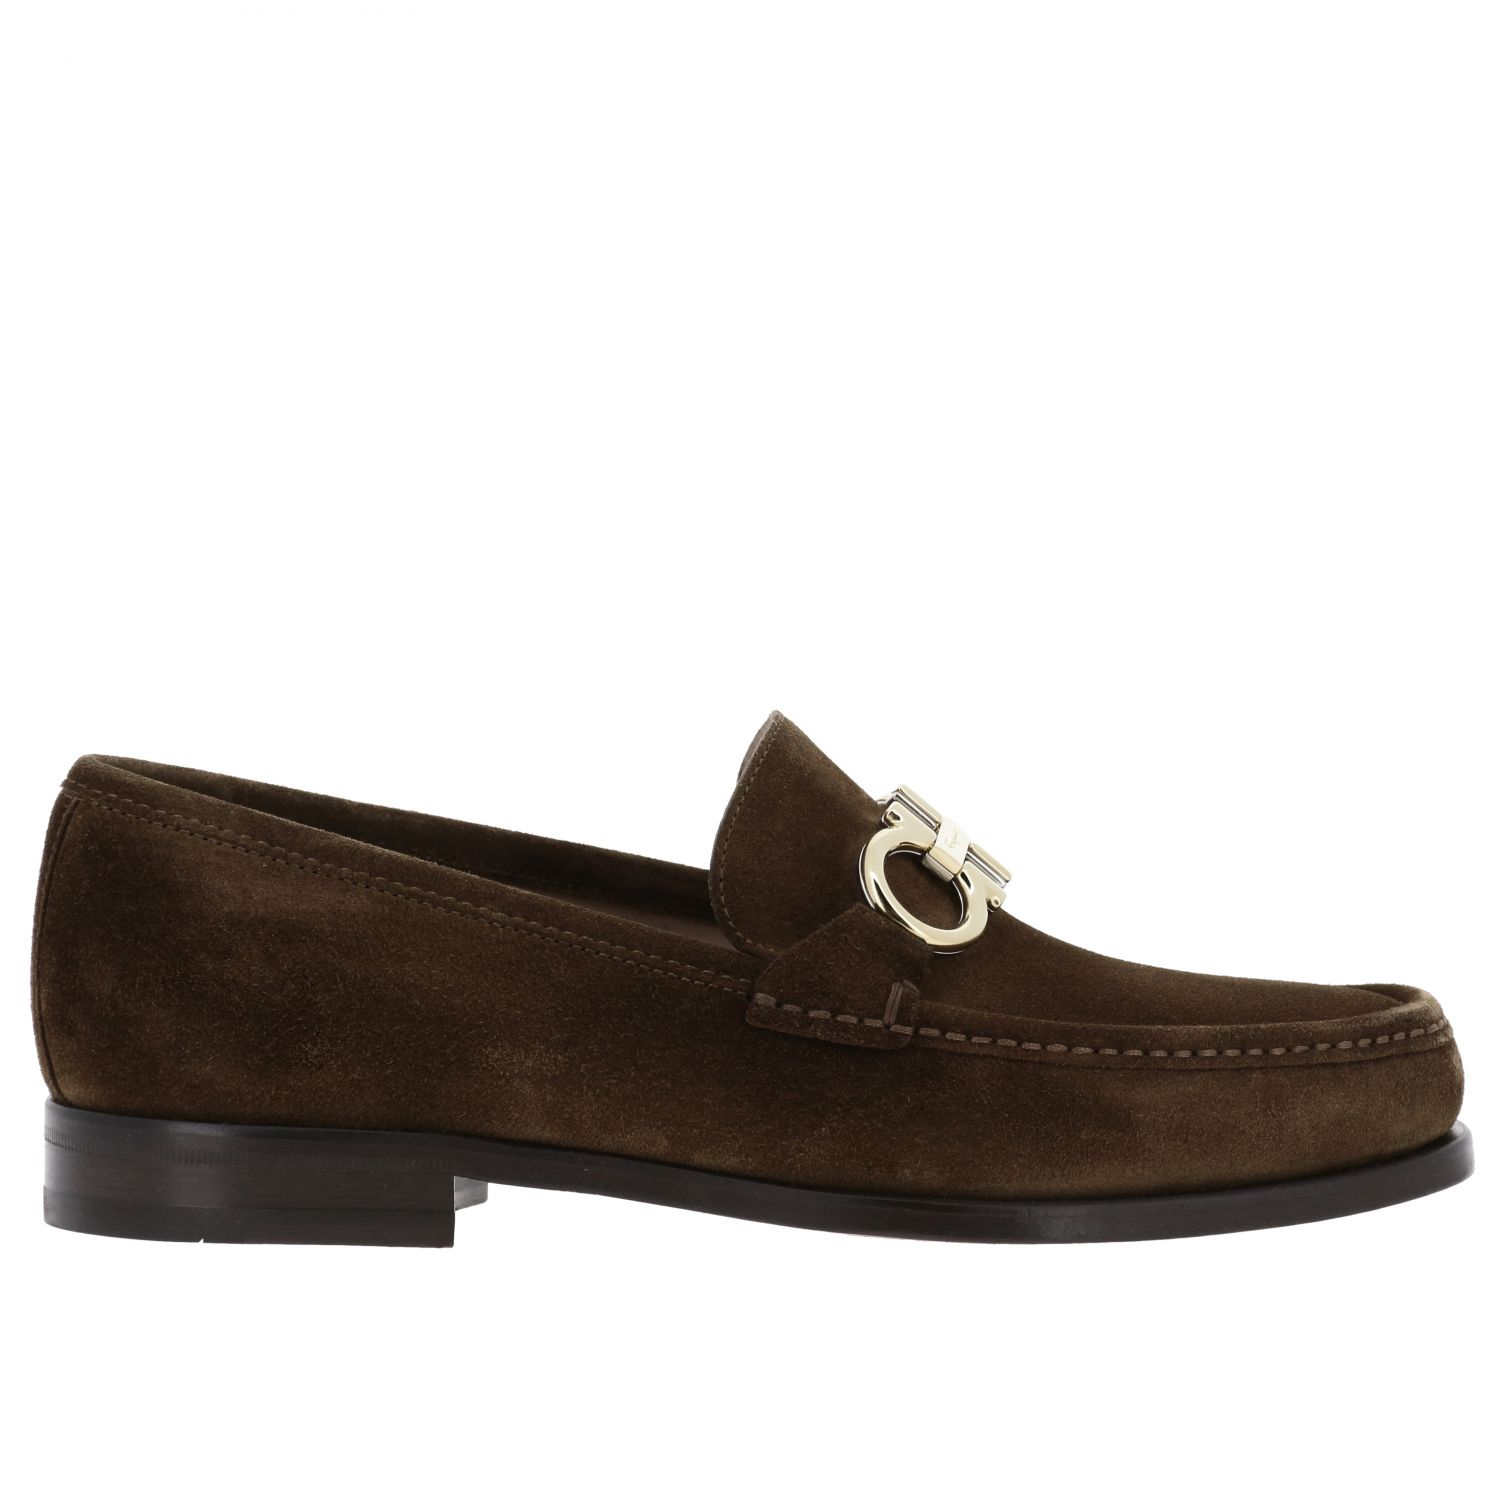 Shoes men Salvatore Ferragamo brown 1